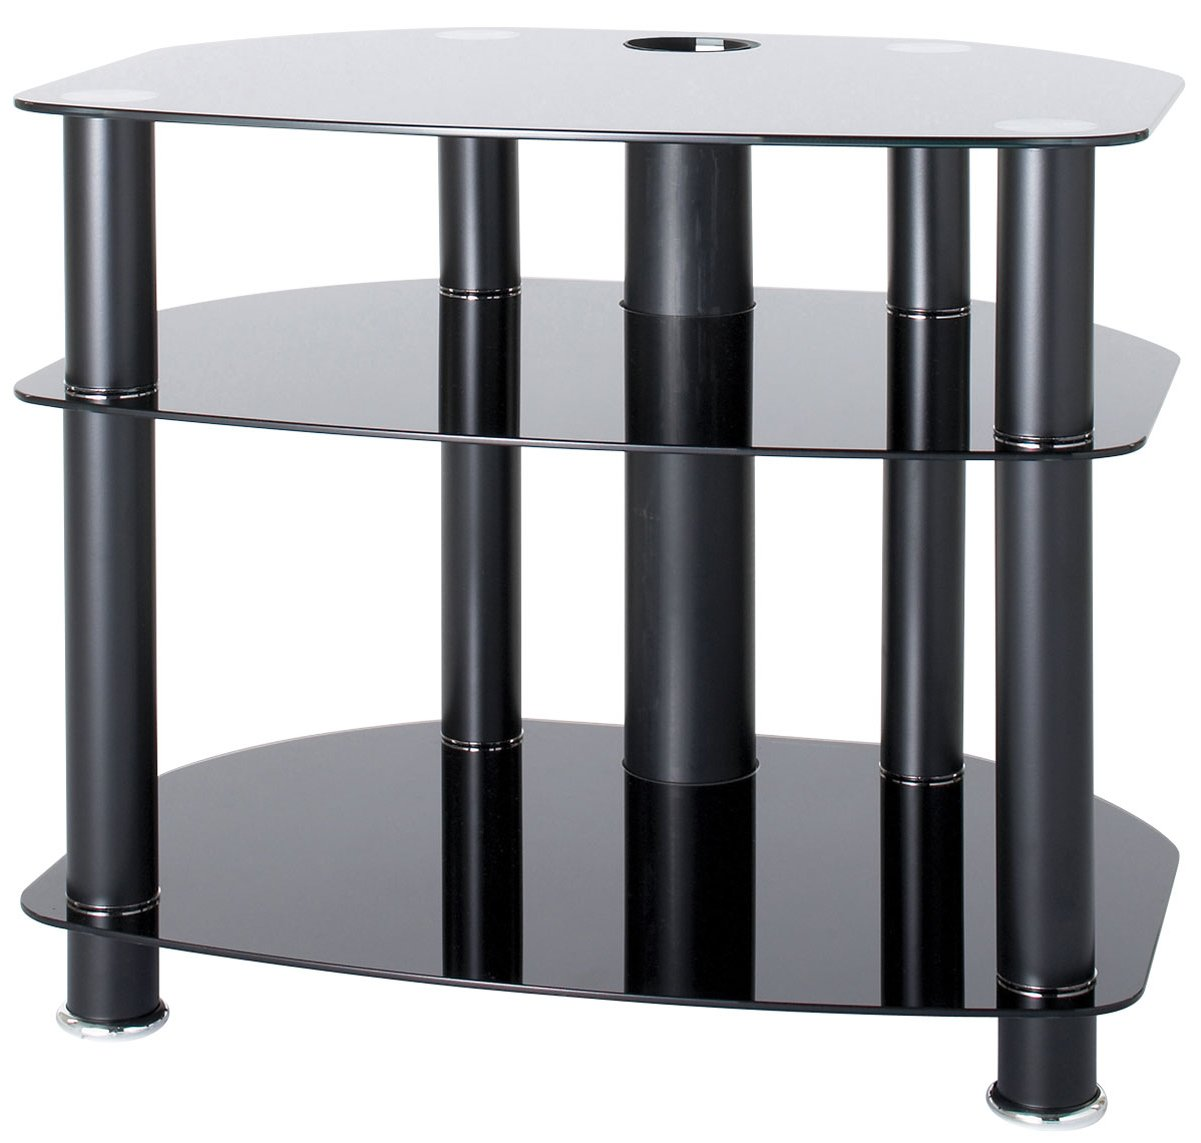 alphason black glass tv stand for up to 26 tvs. Black Bedroom Furniture Sets. Home Design Ideas